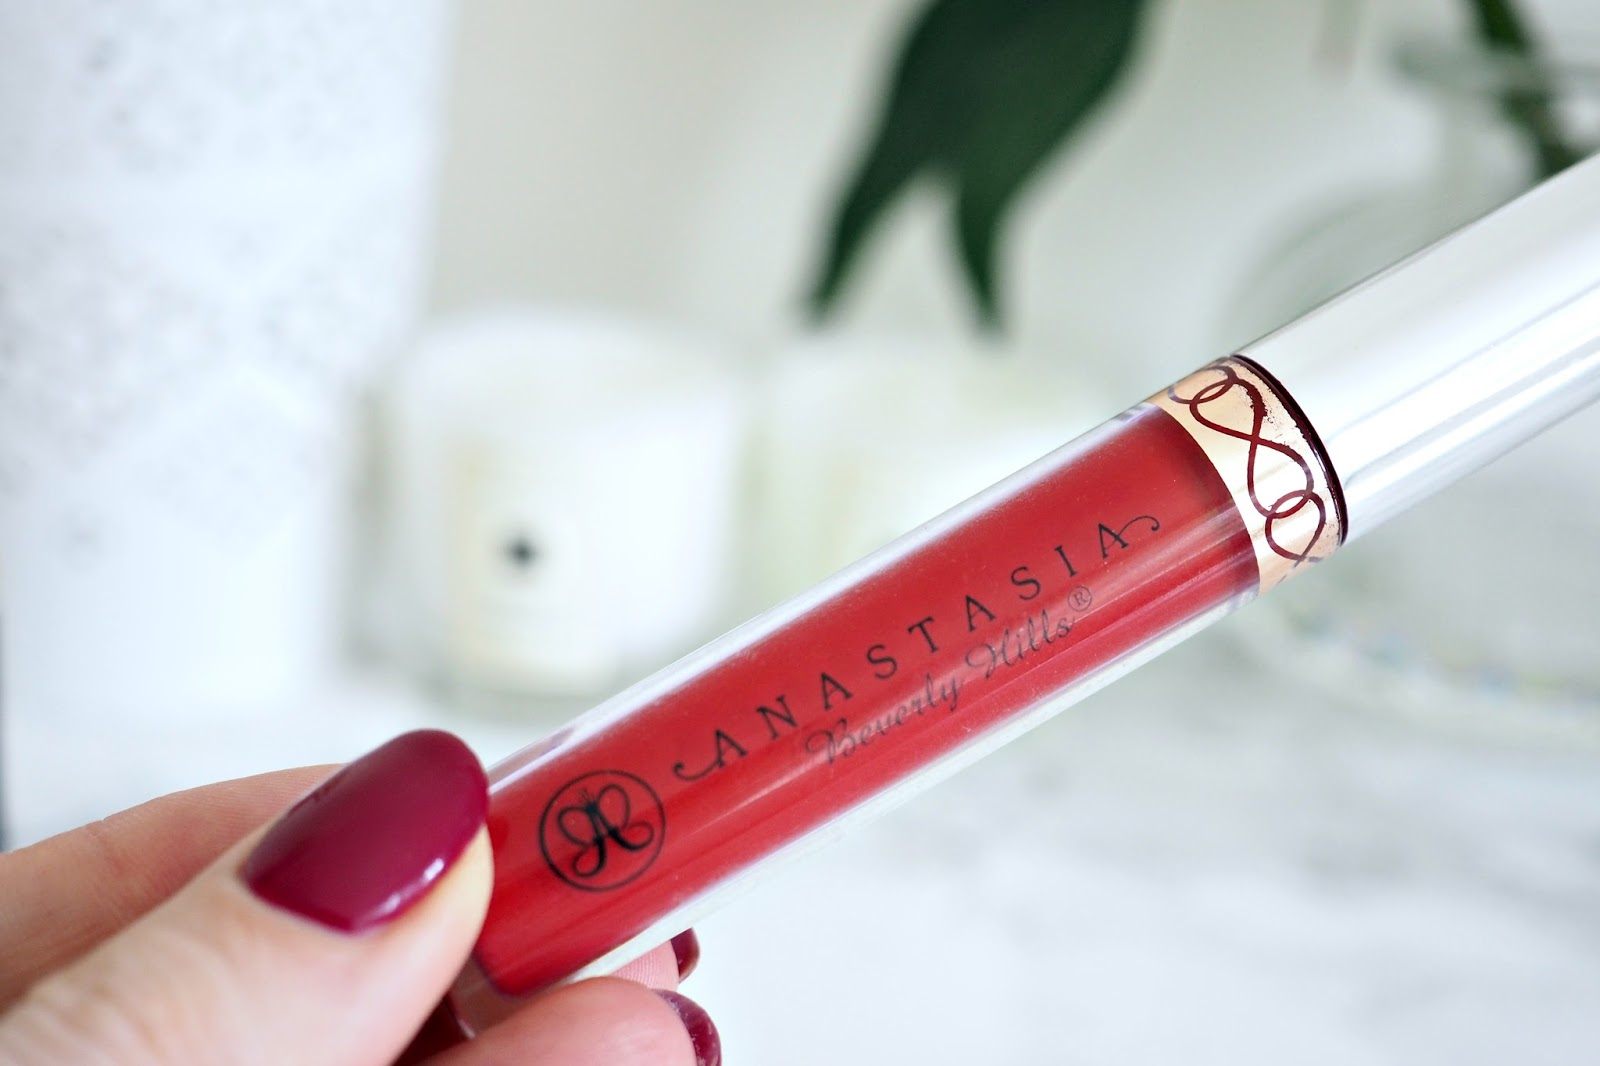 Anastasia Beverly Hills Liquid Lipstick in shade 'American Doll'